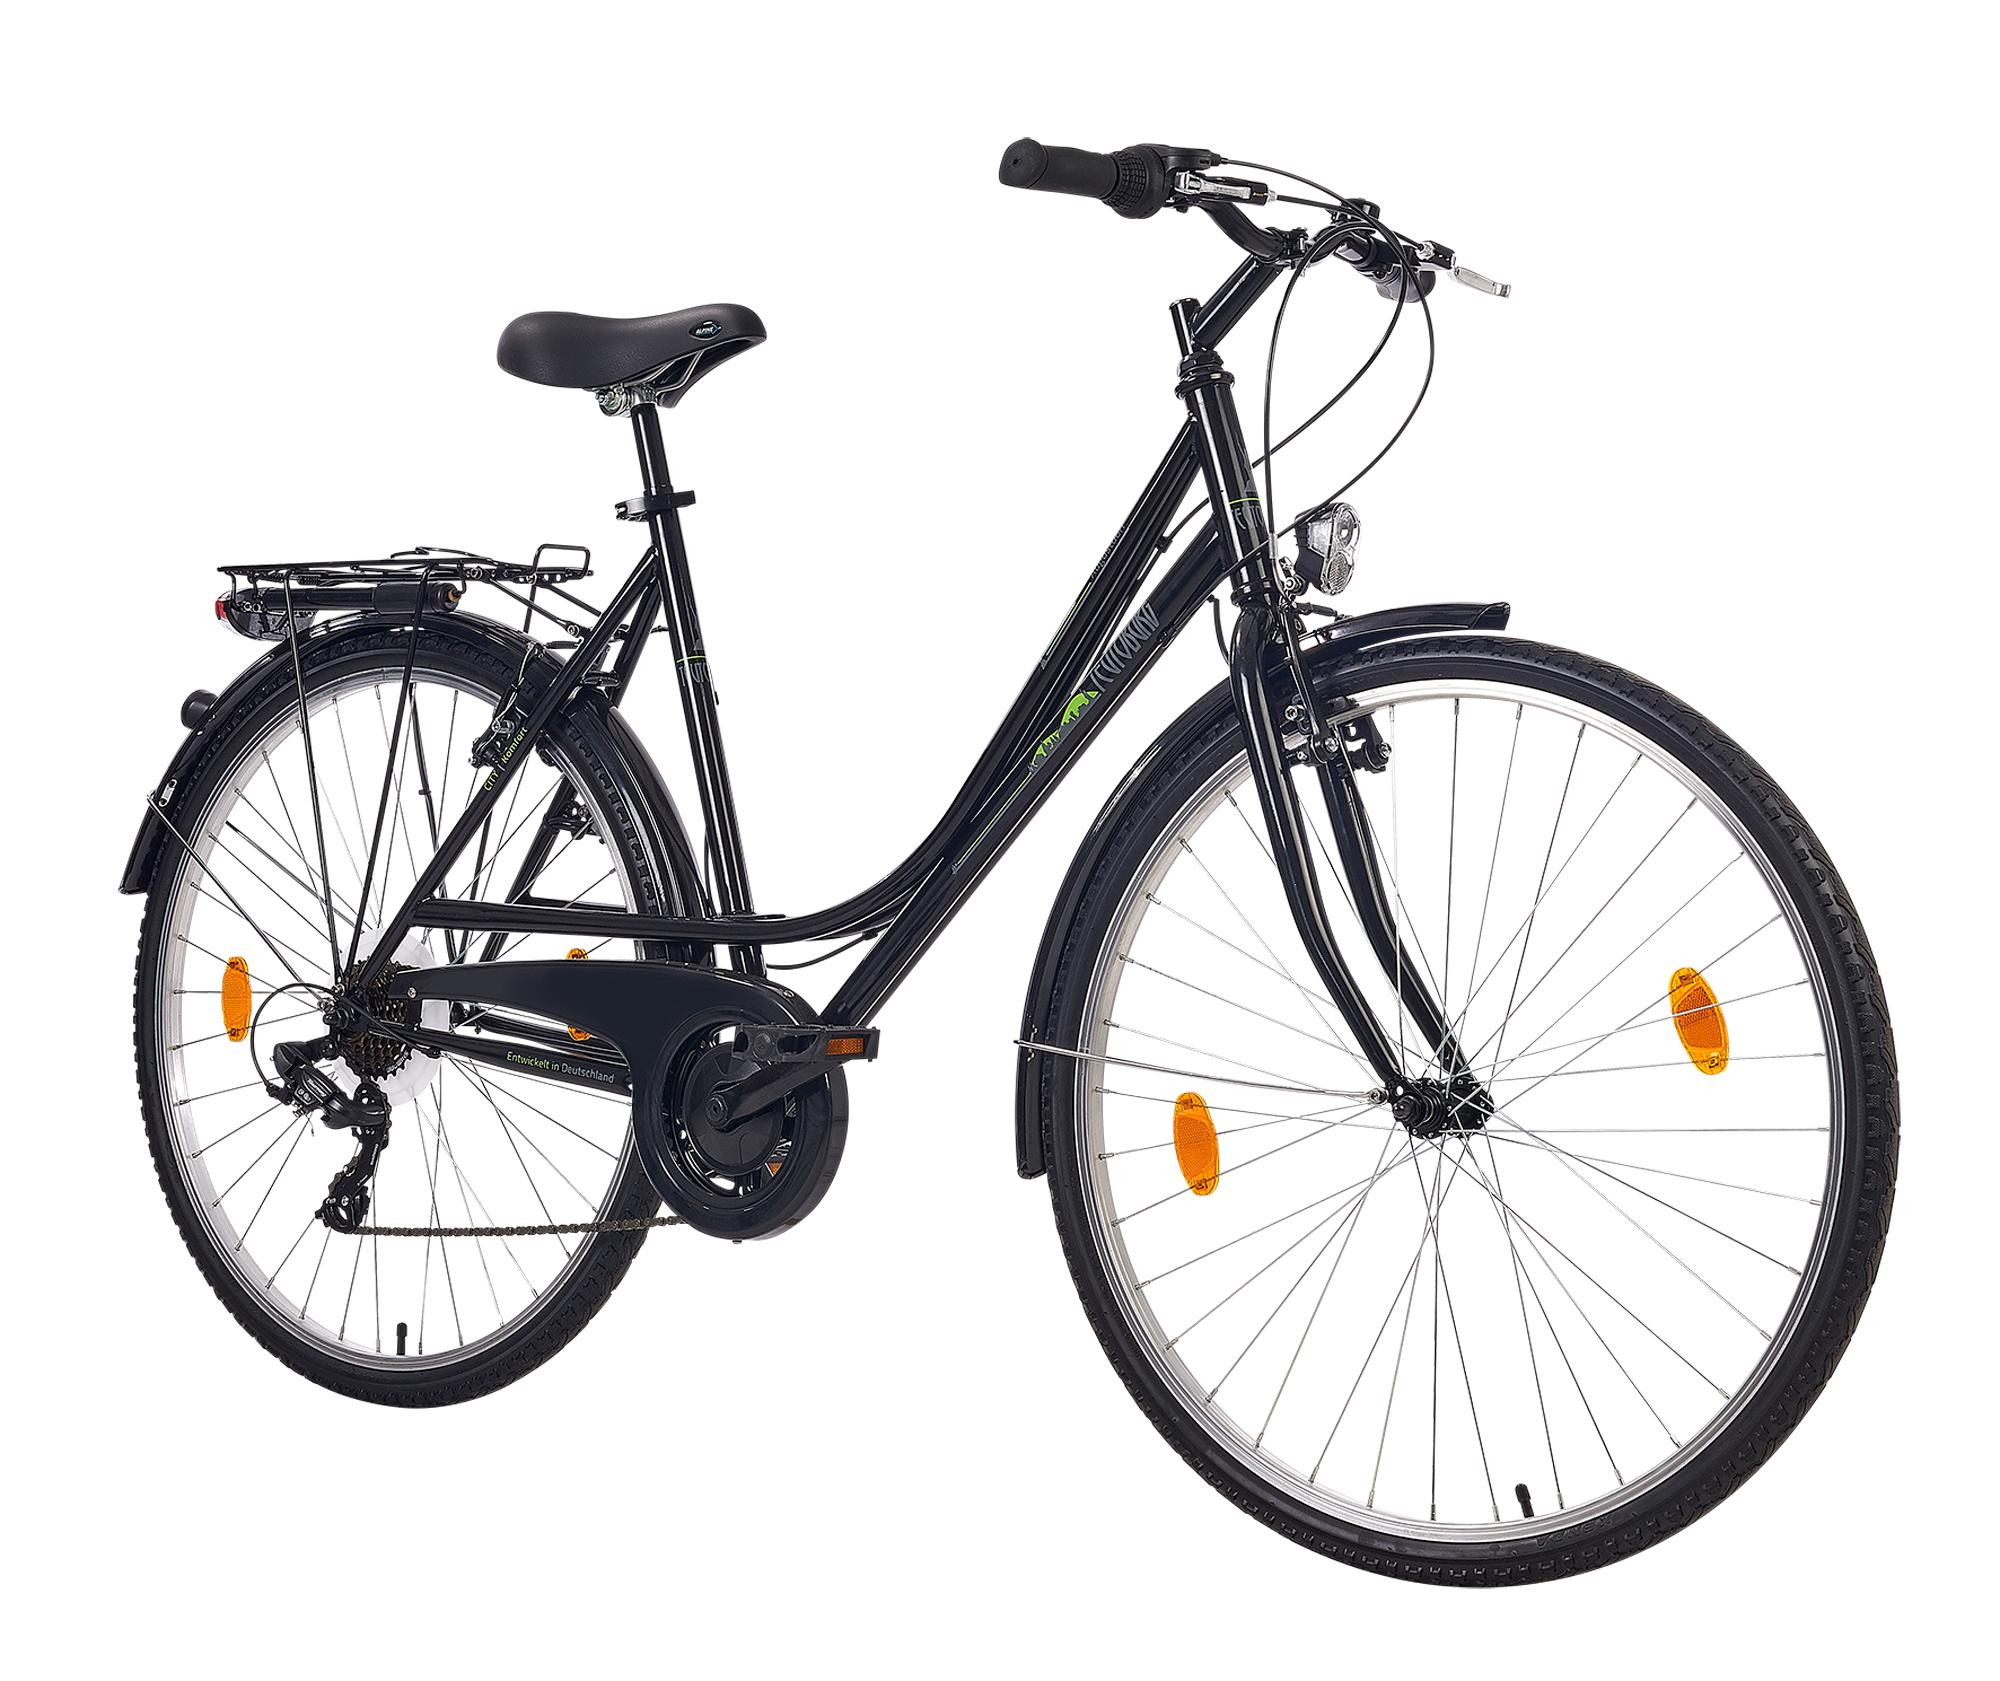 teutoburg augustdorf citybike fahrrad 28 zoll damen. Black Bedroom Furniture Sets. Home Design Ideas